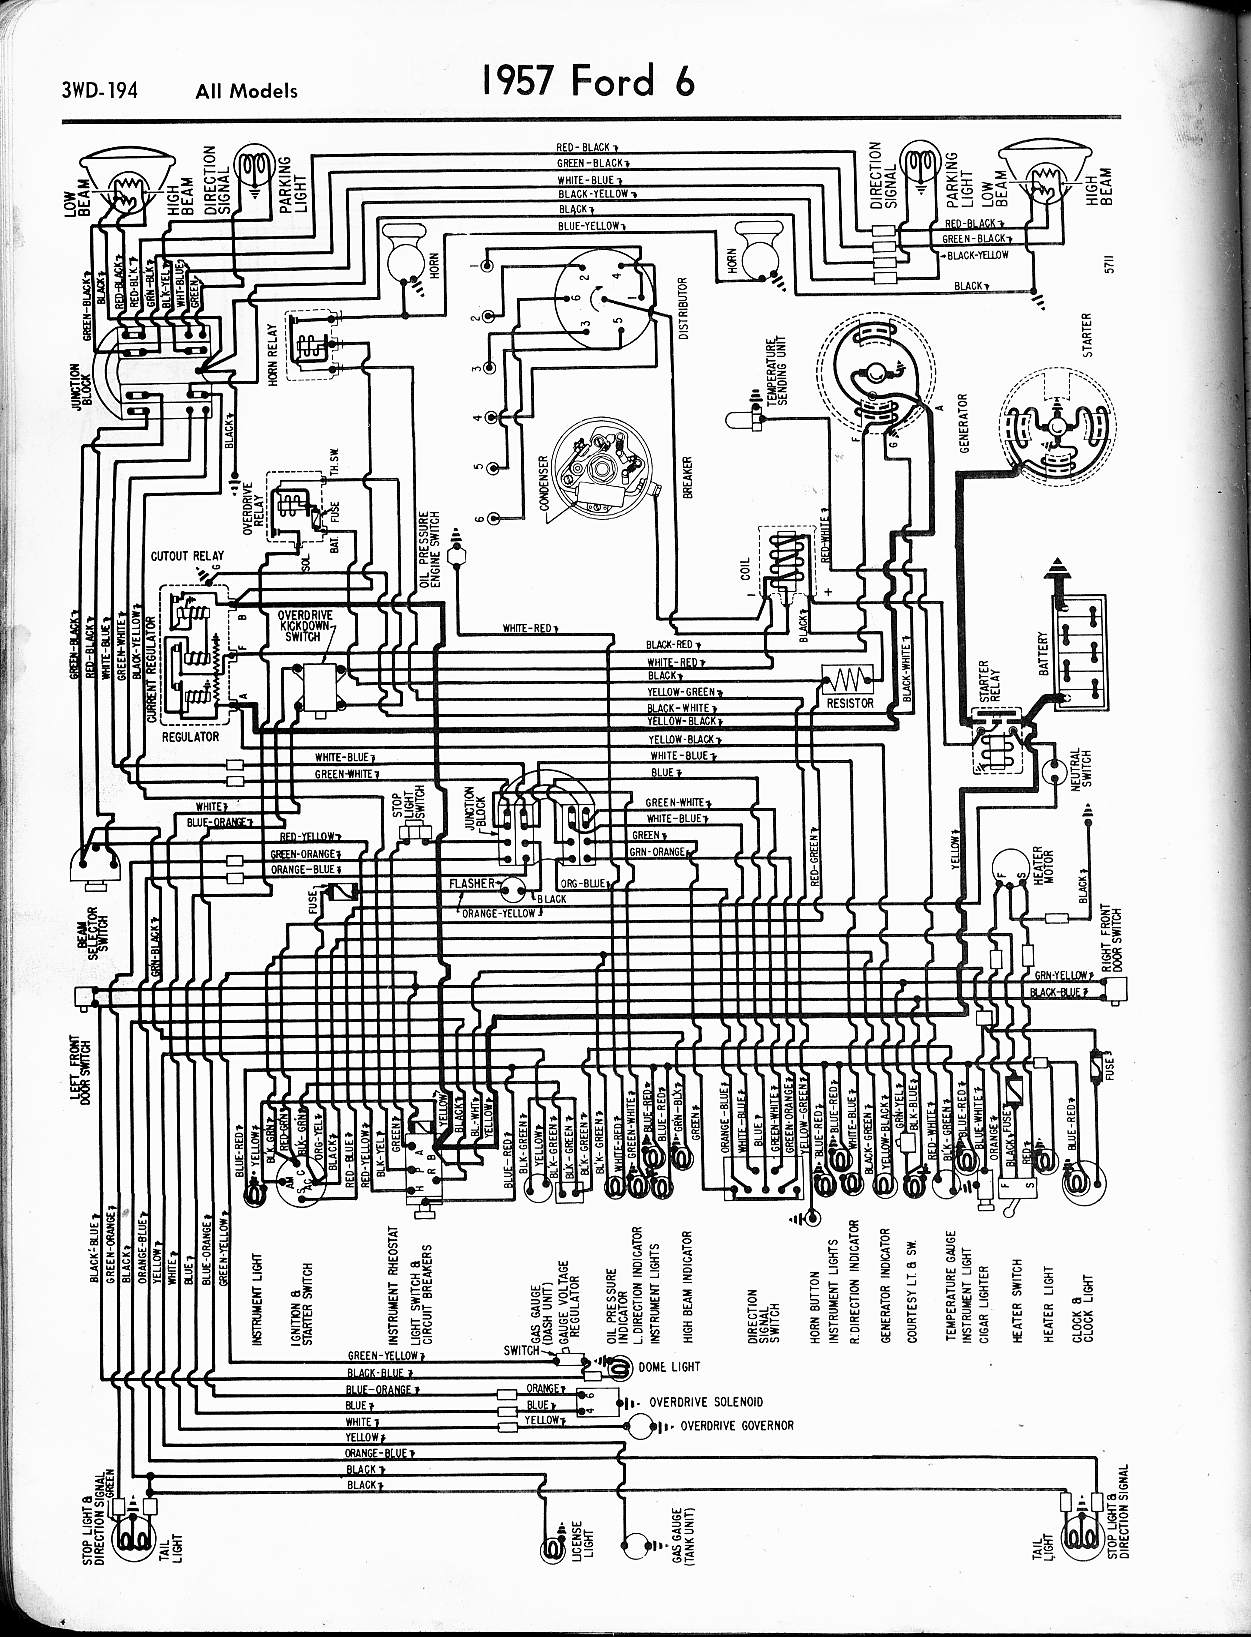 37 ford wiring diagram 1957 ranchero    ford    truck enthusiasts forums  1957 ranchero    ford    truck enthusiasts forums